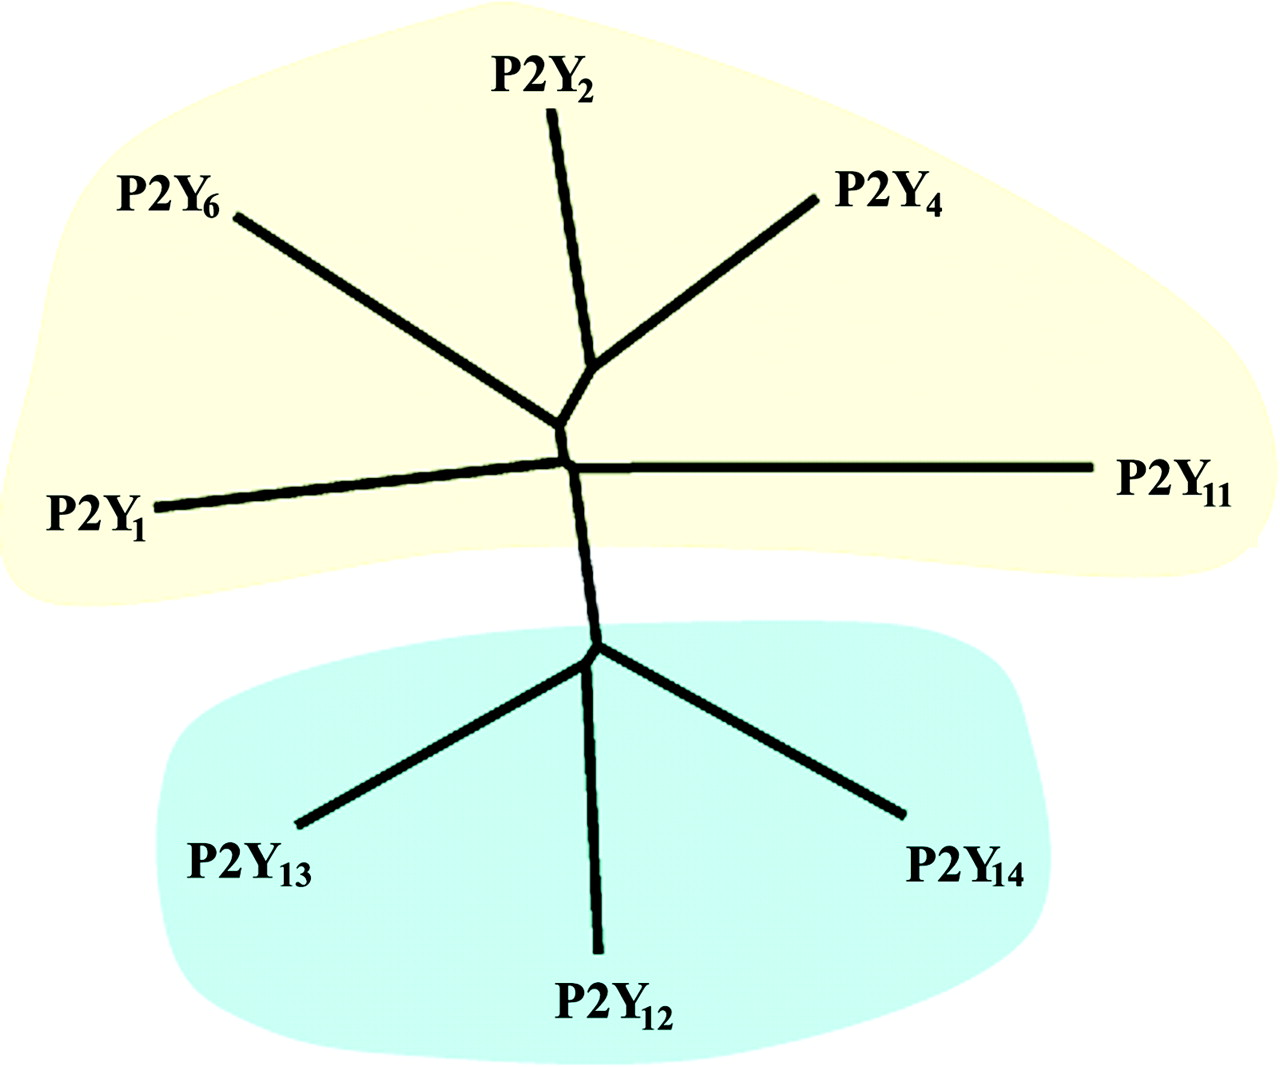 International Union Of Pharmacology Lviii Update On The P2y G Free Tree Diagram Generator 10159 Download Figure